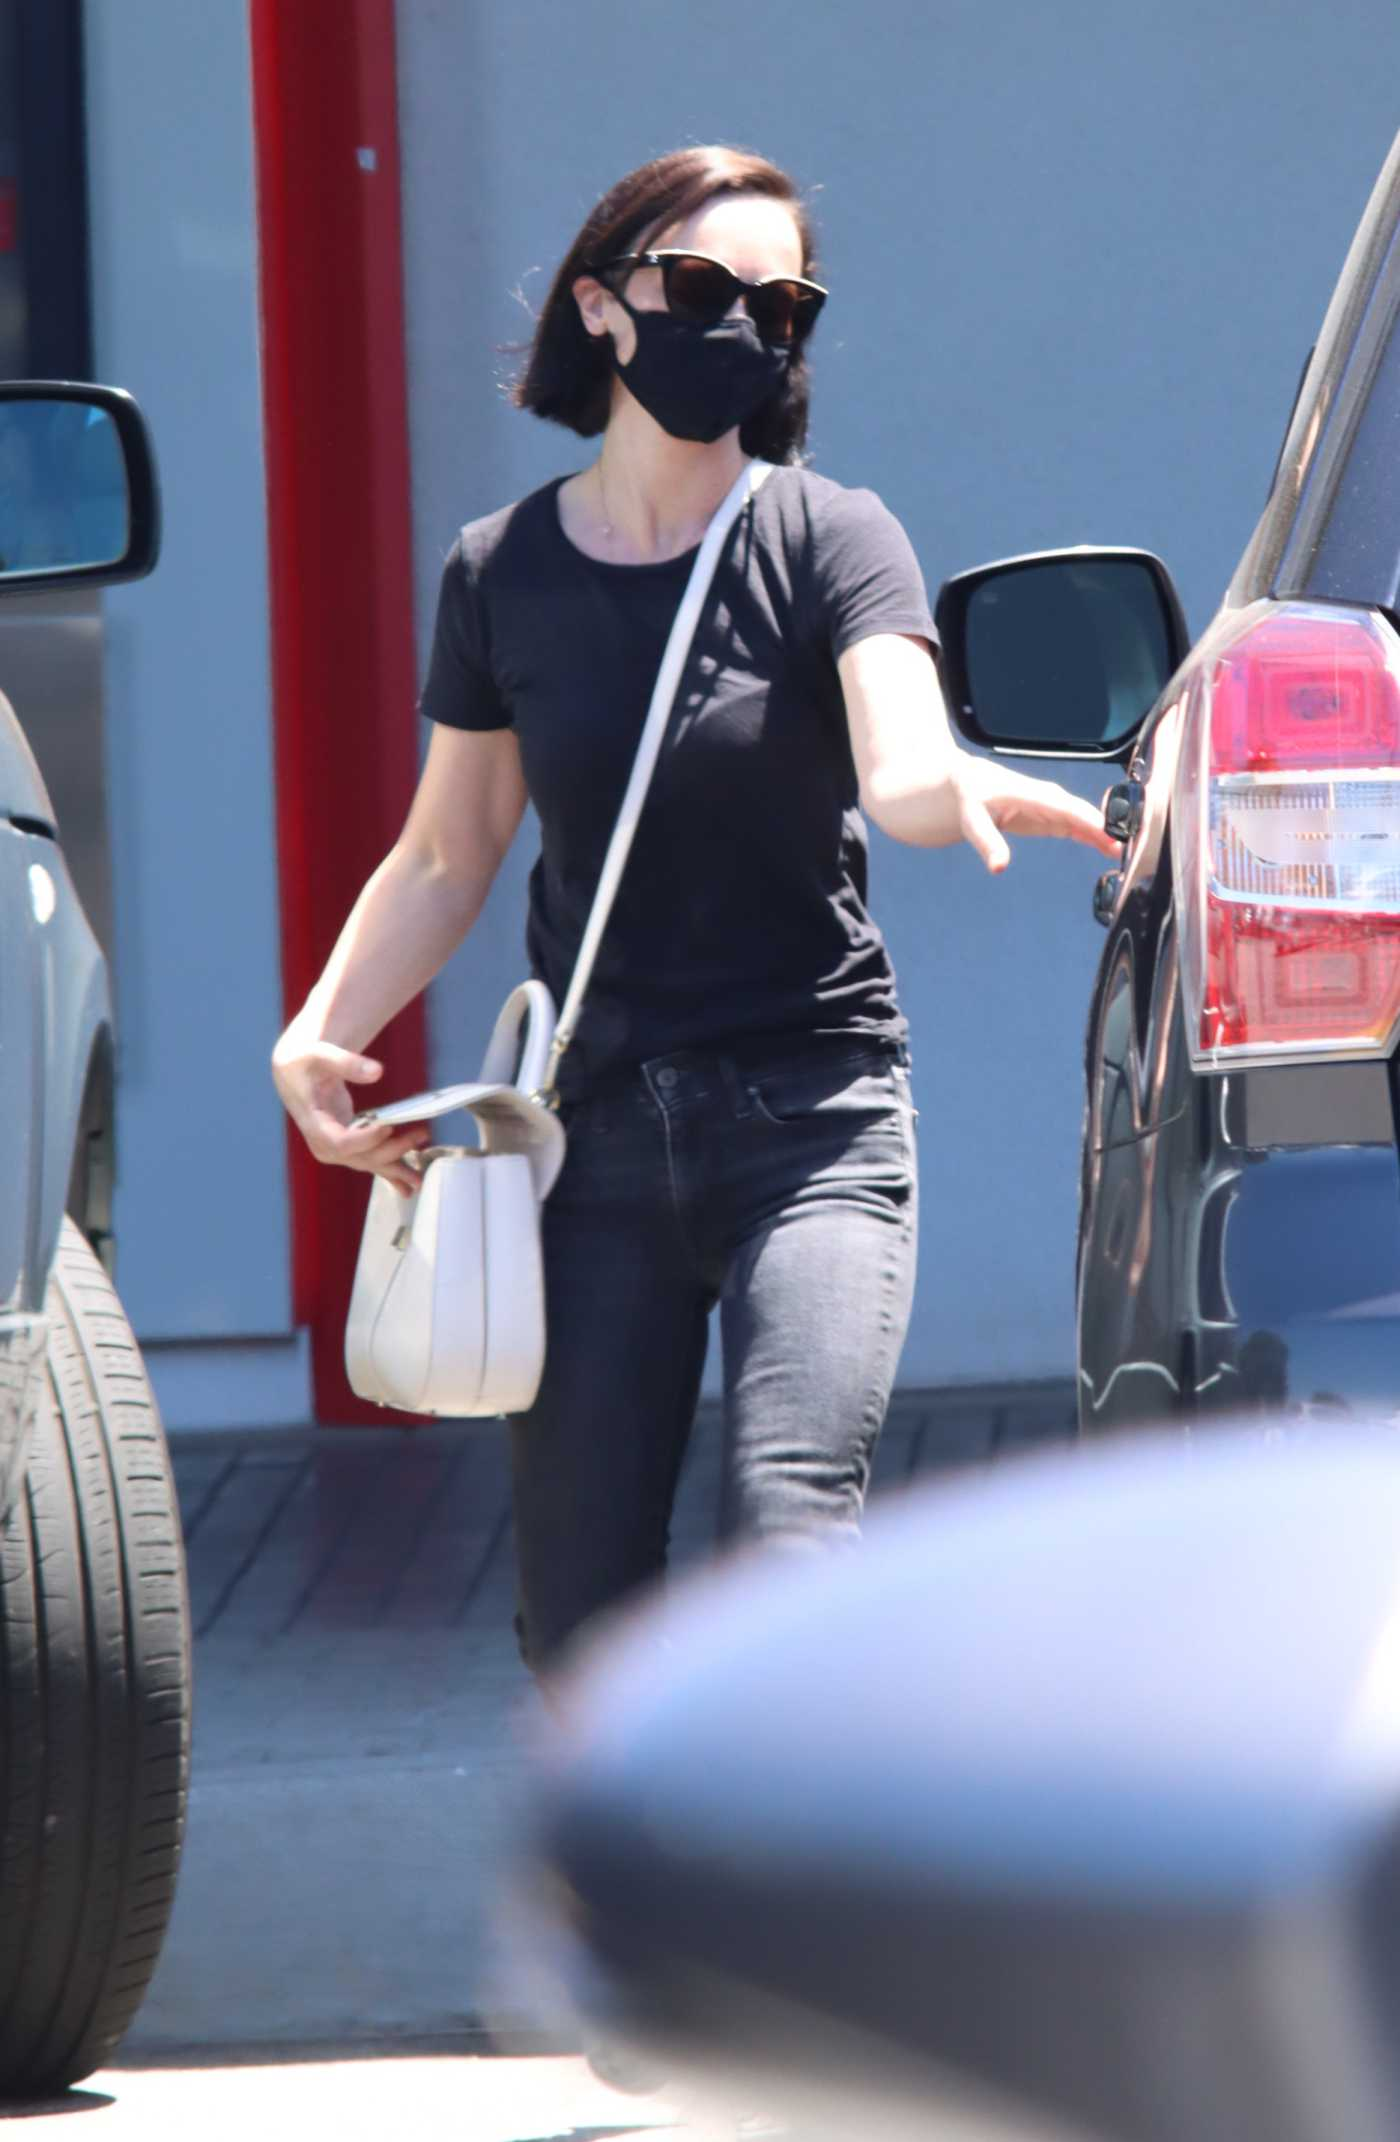 Christina Ricci in a Black Tee Makes a Stop at the Urgent Care in Los Angeles 07/03/2020